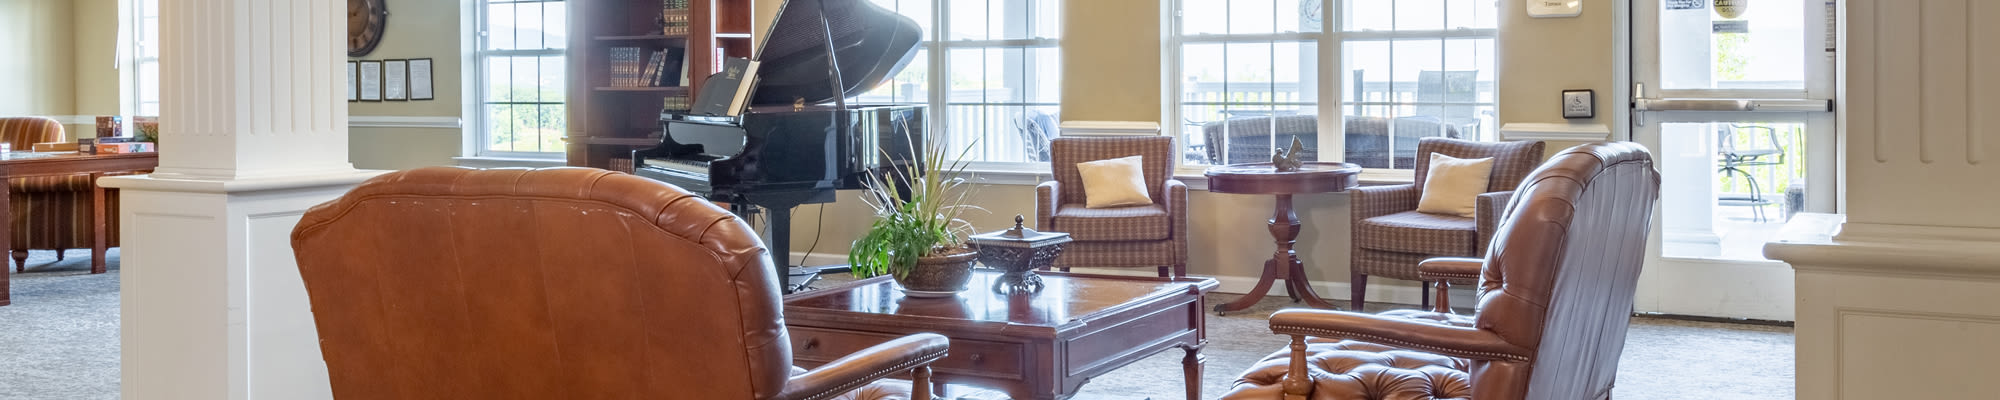 Living Options at The Harmony Collection at Roanoke - Independent Living in Roanoke, Virginia